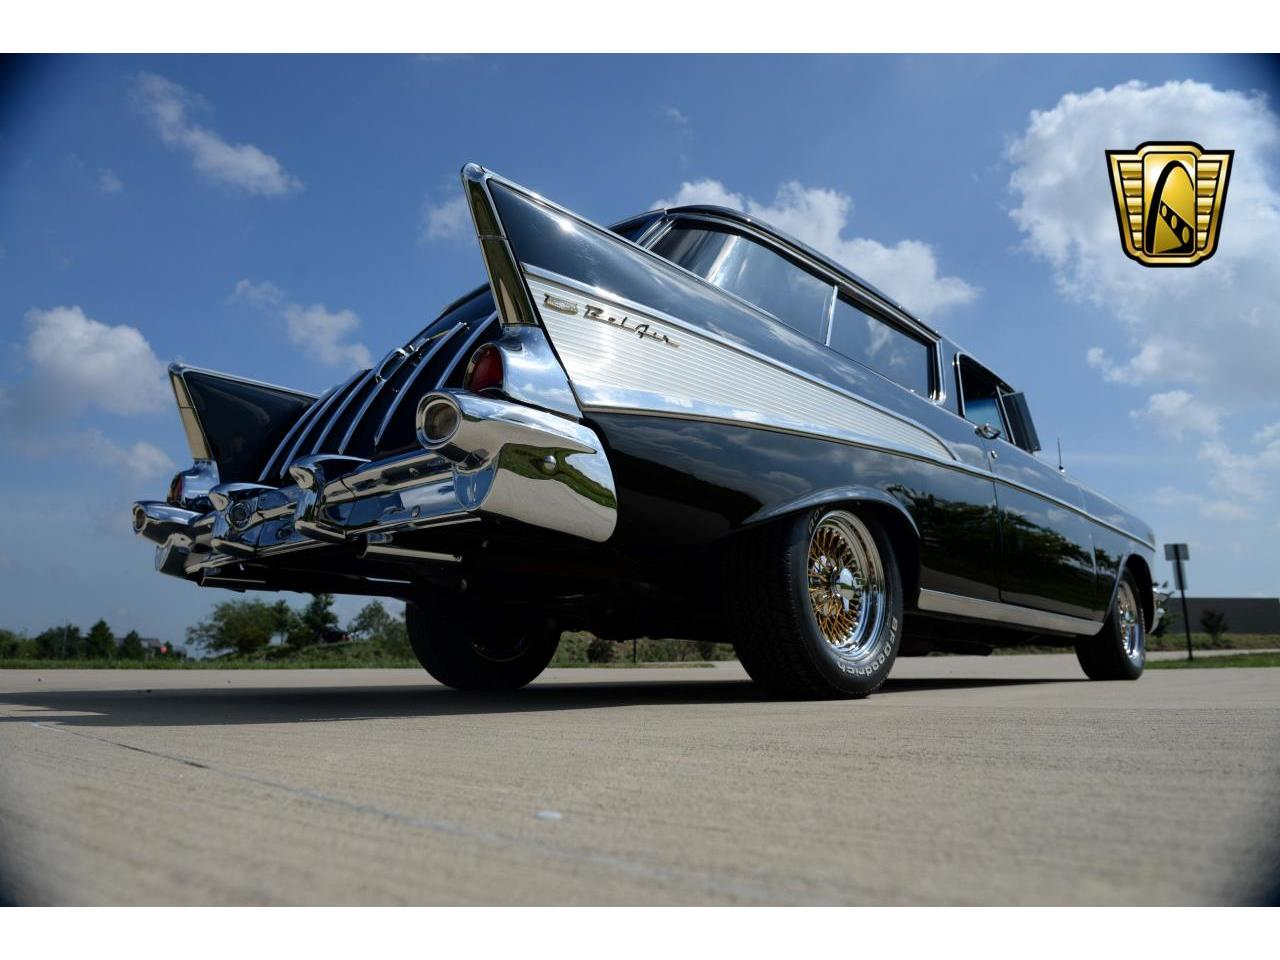 Large Picture of 1957 Chevrolet Nomad located in Texas - $59,000.00 - L7NG